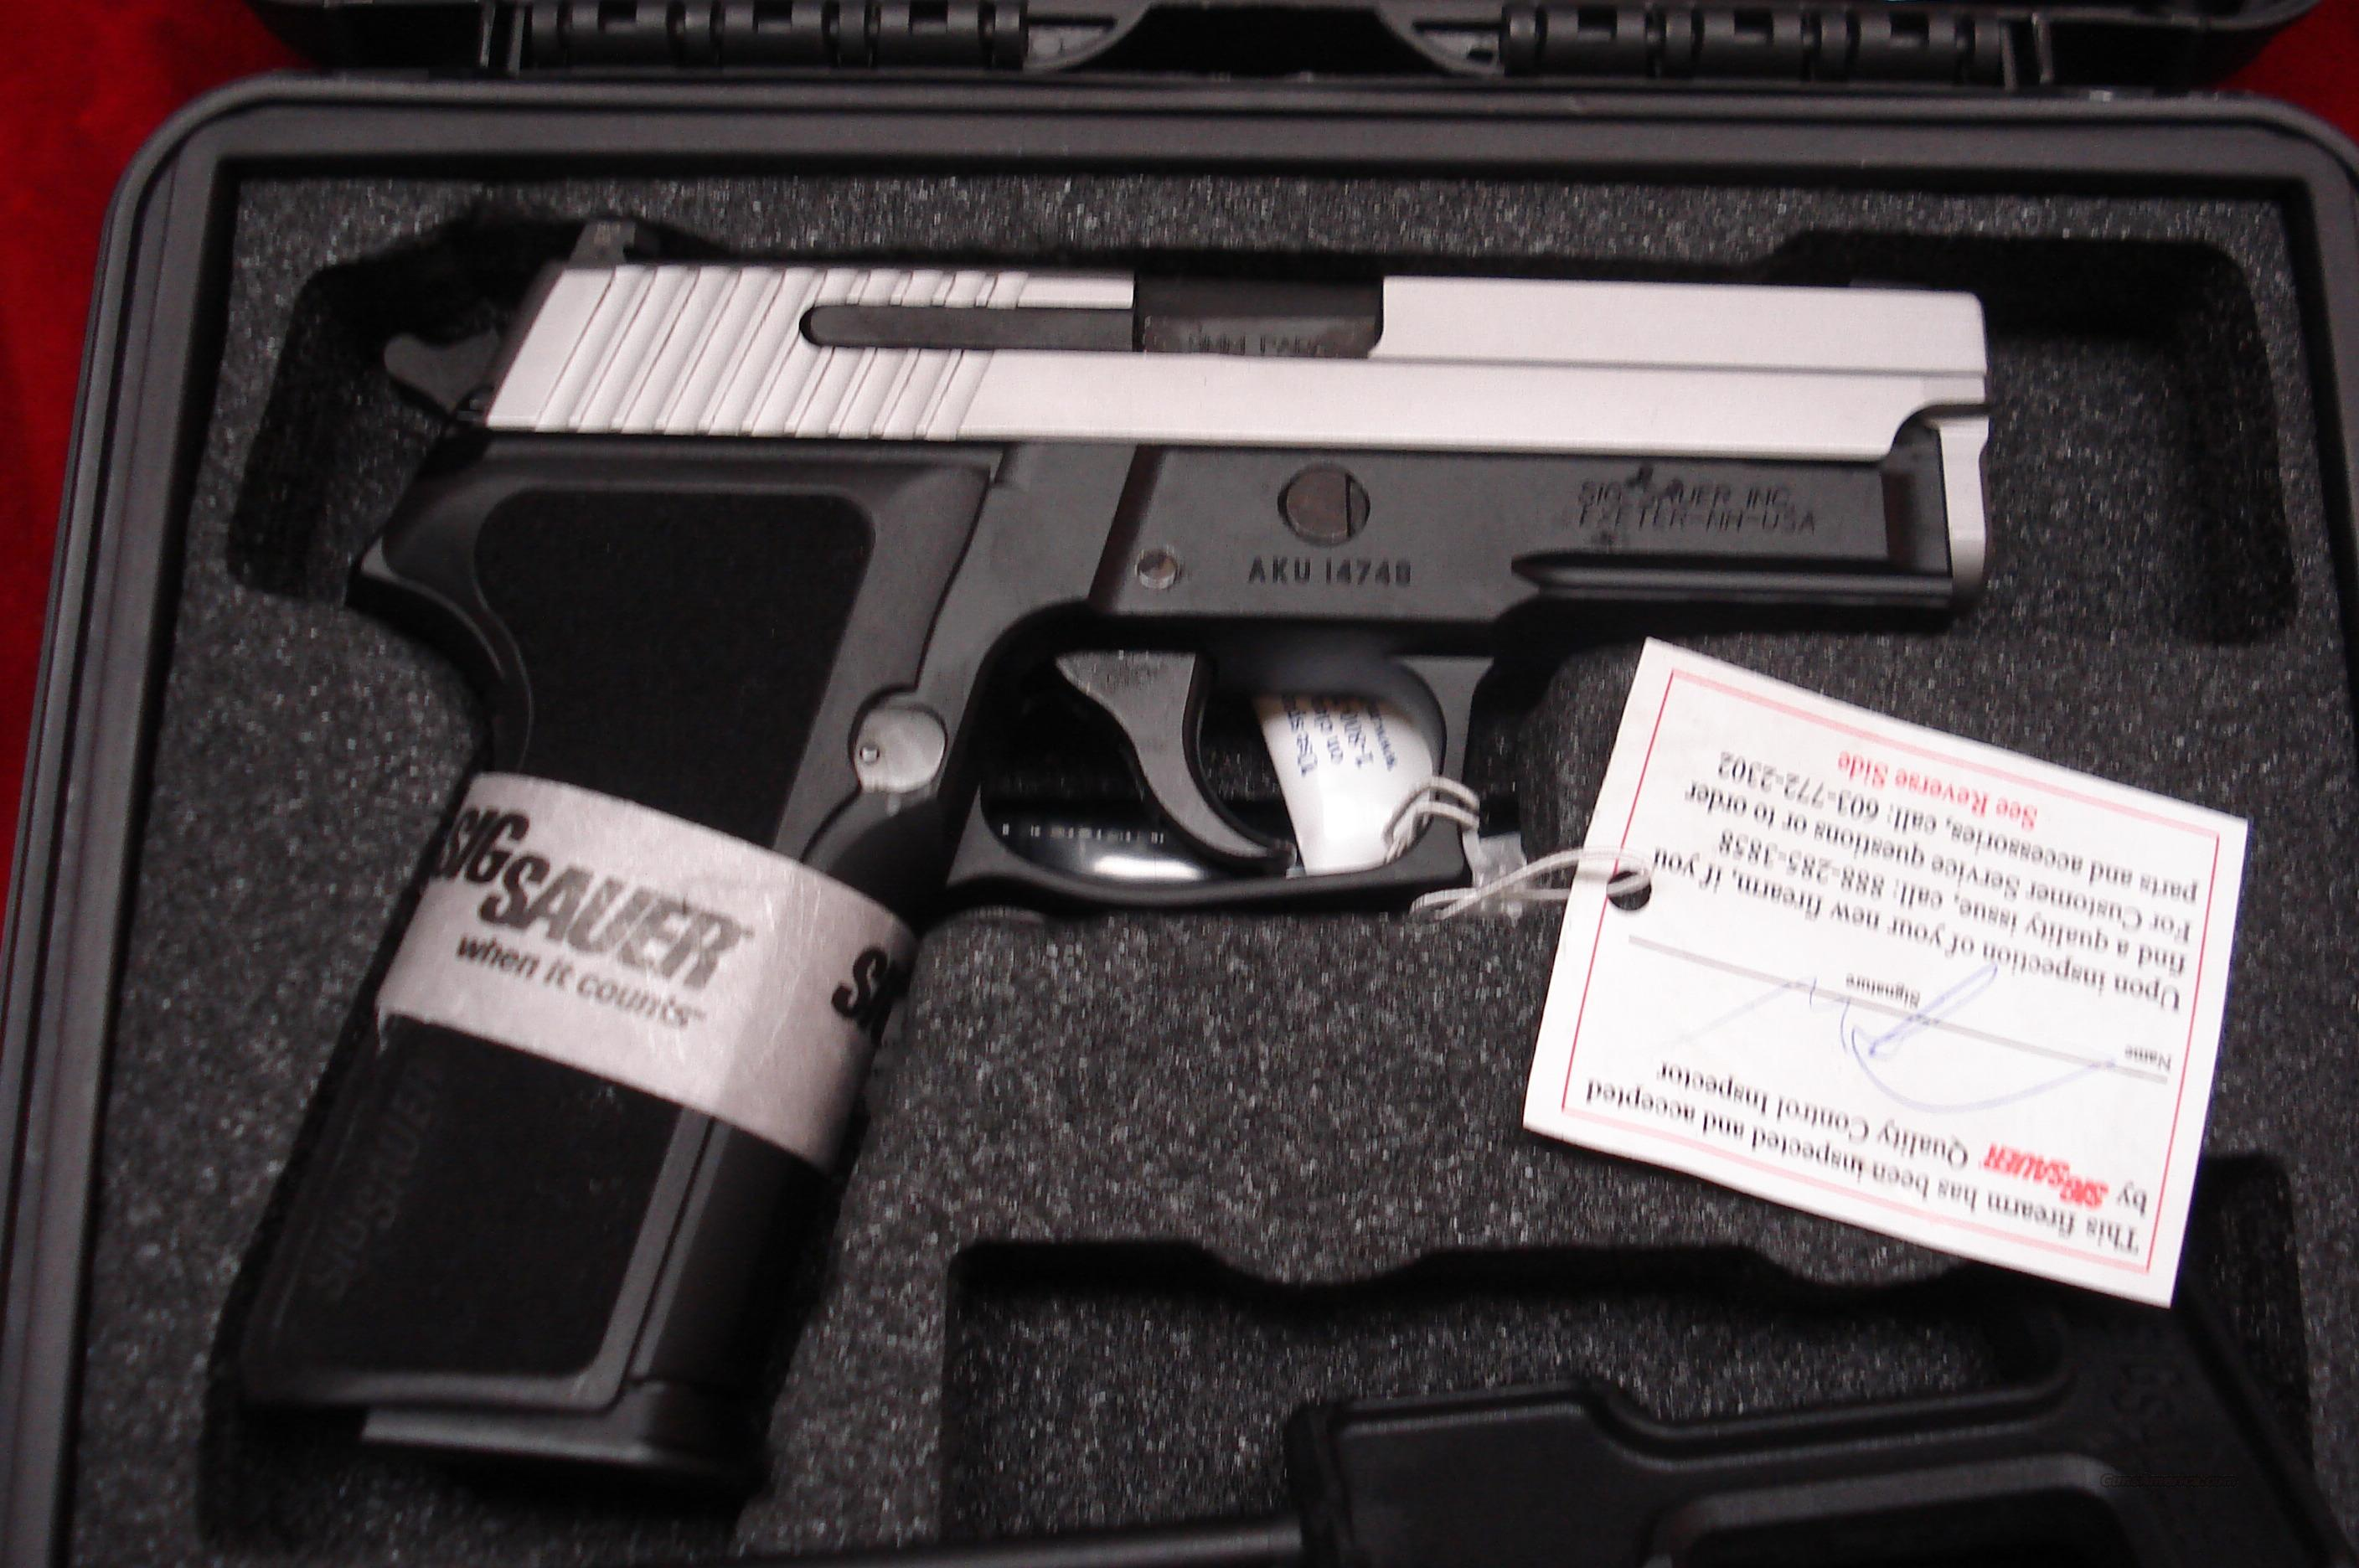 SIG SAUER P229 DUO-TONE 9MM WITH NIGHT SIGHTS NEW   Guns > Pistols > Sig - Sauer/Sigarms Pistols > P229